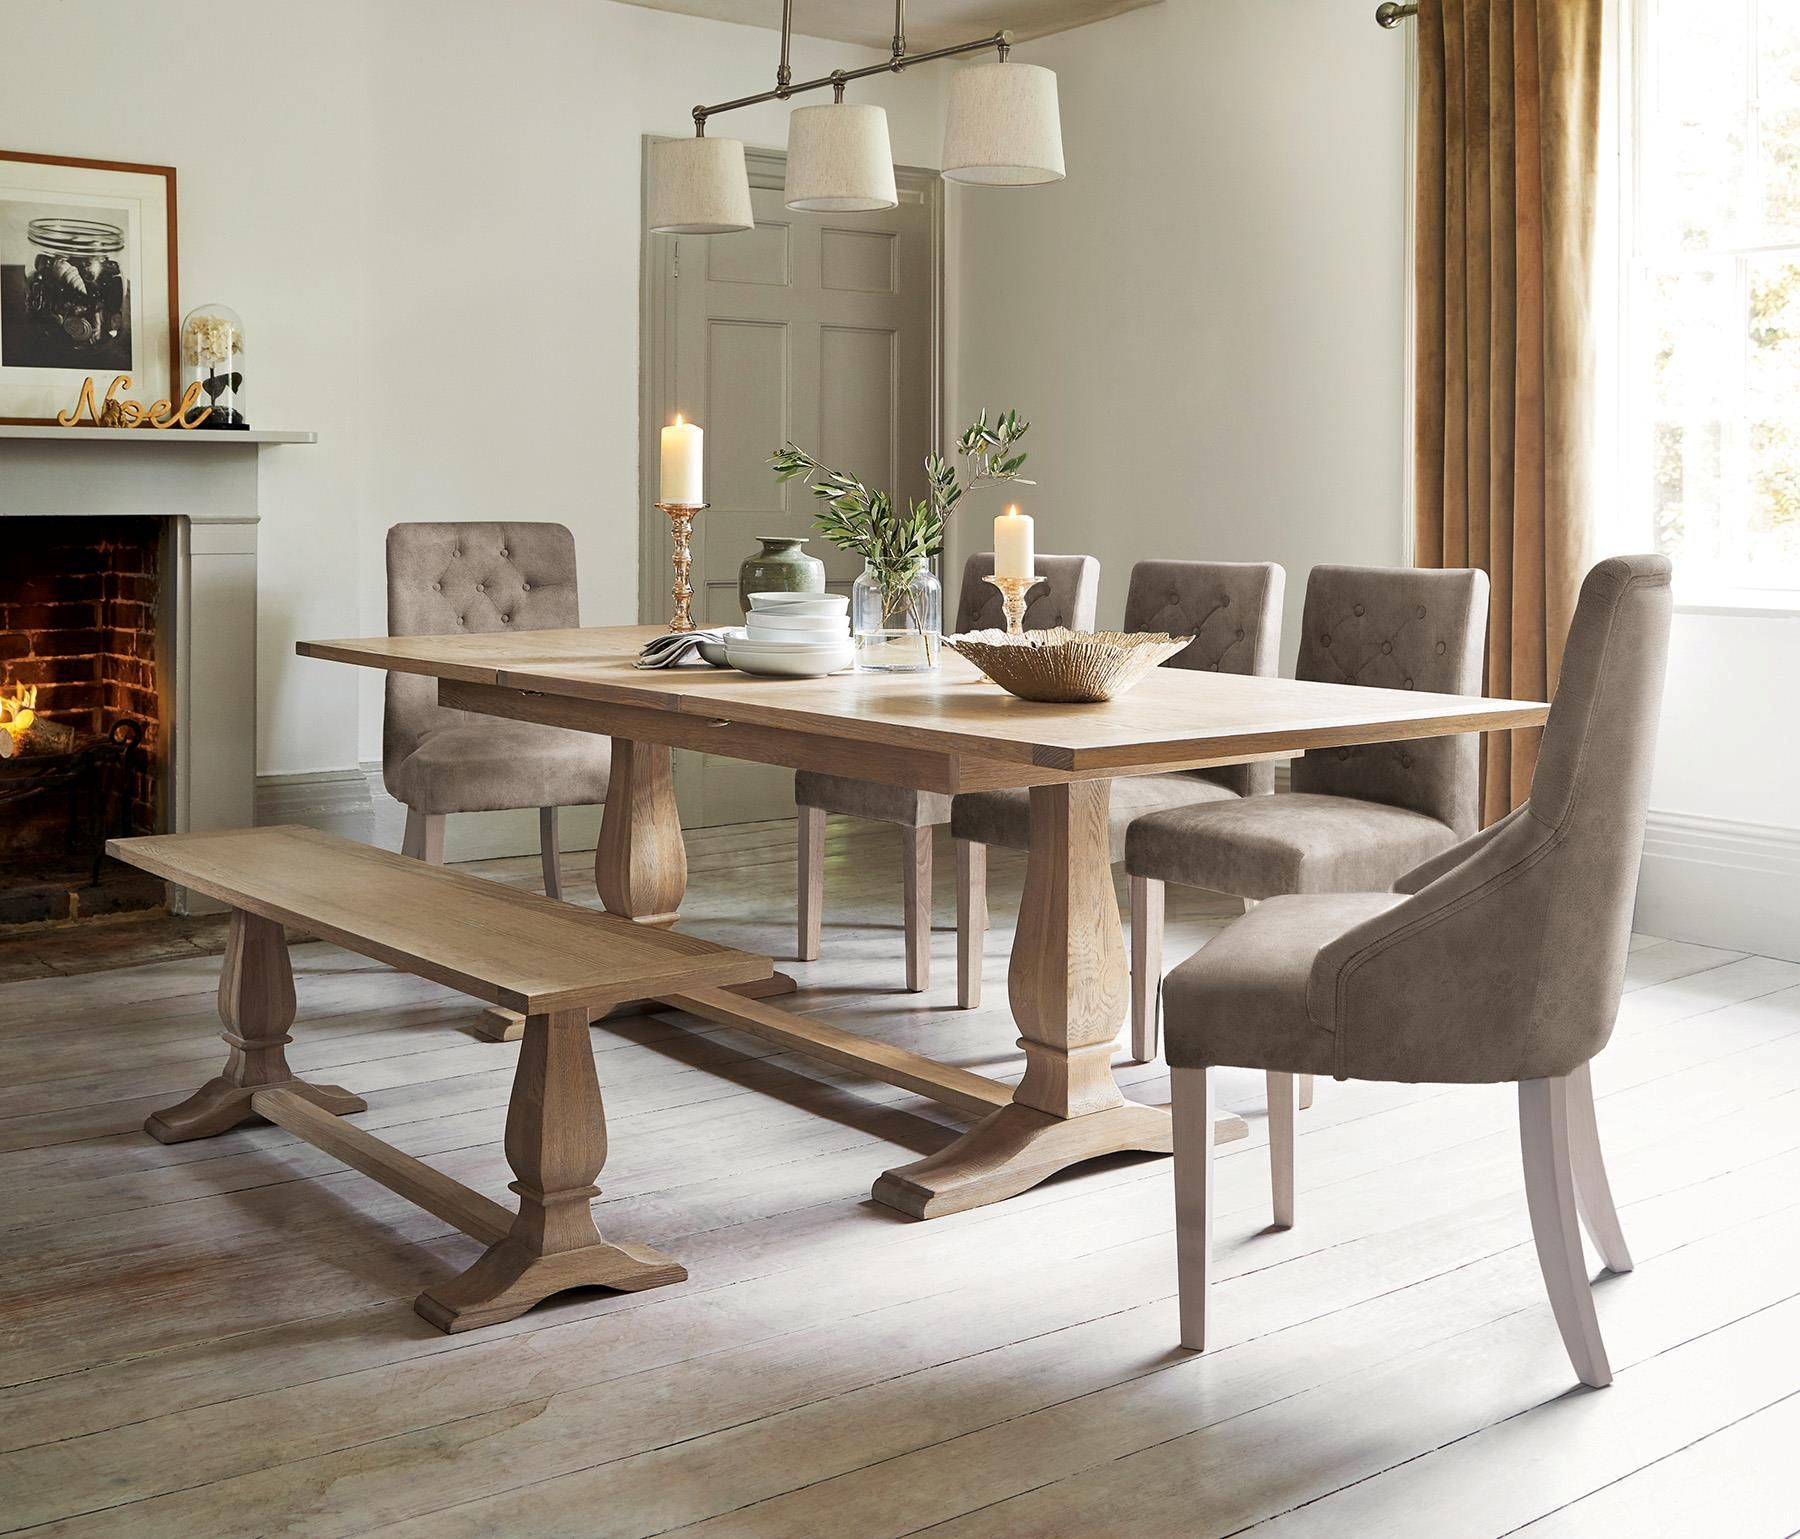 10 Seater Kitchen Table Buy Hardwick 6 10 Seater Extending Dining Table From The Next Uk